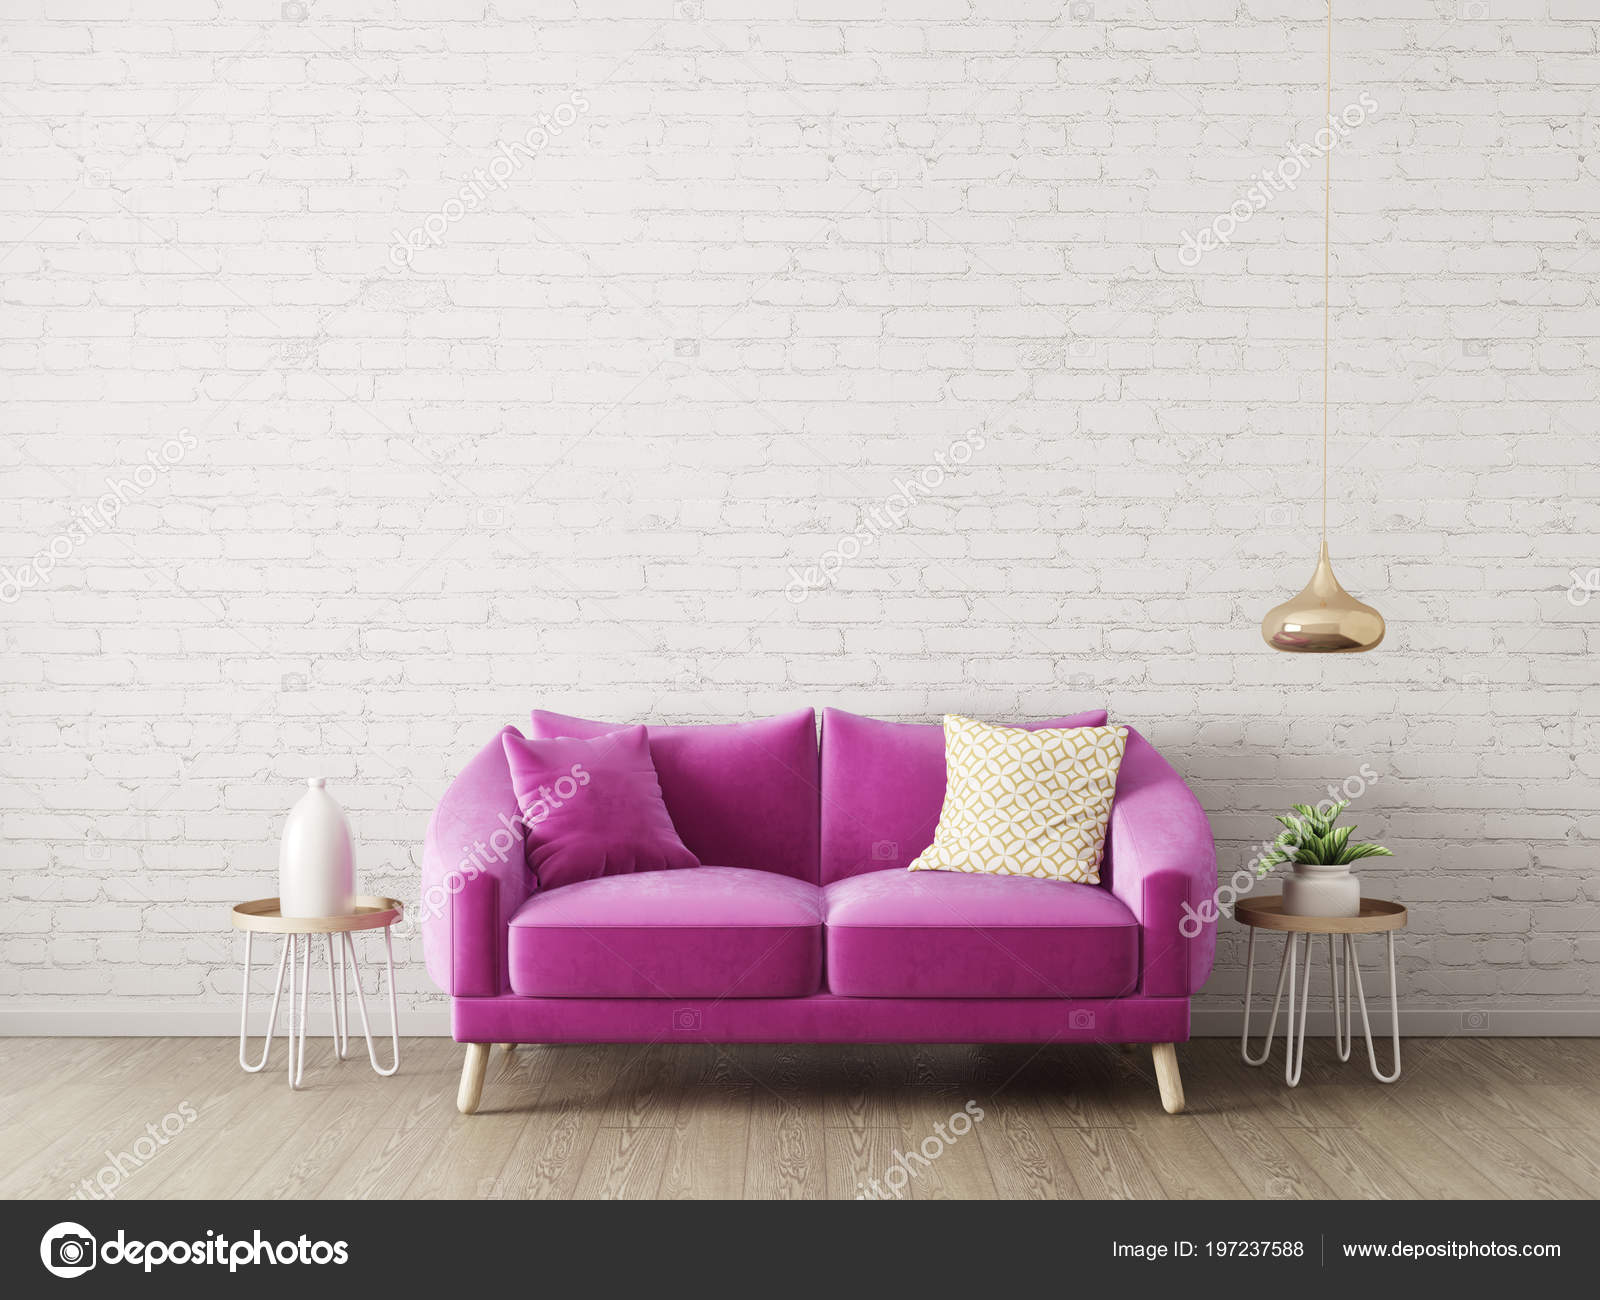 Modern Living Room Sofa Lamp Scandinavian Interior Design Furniture Render Stock Photo Image By Alexroz 197237588